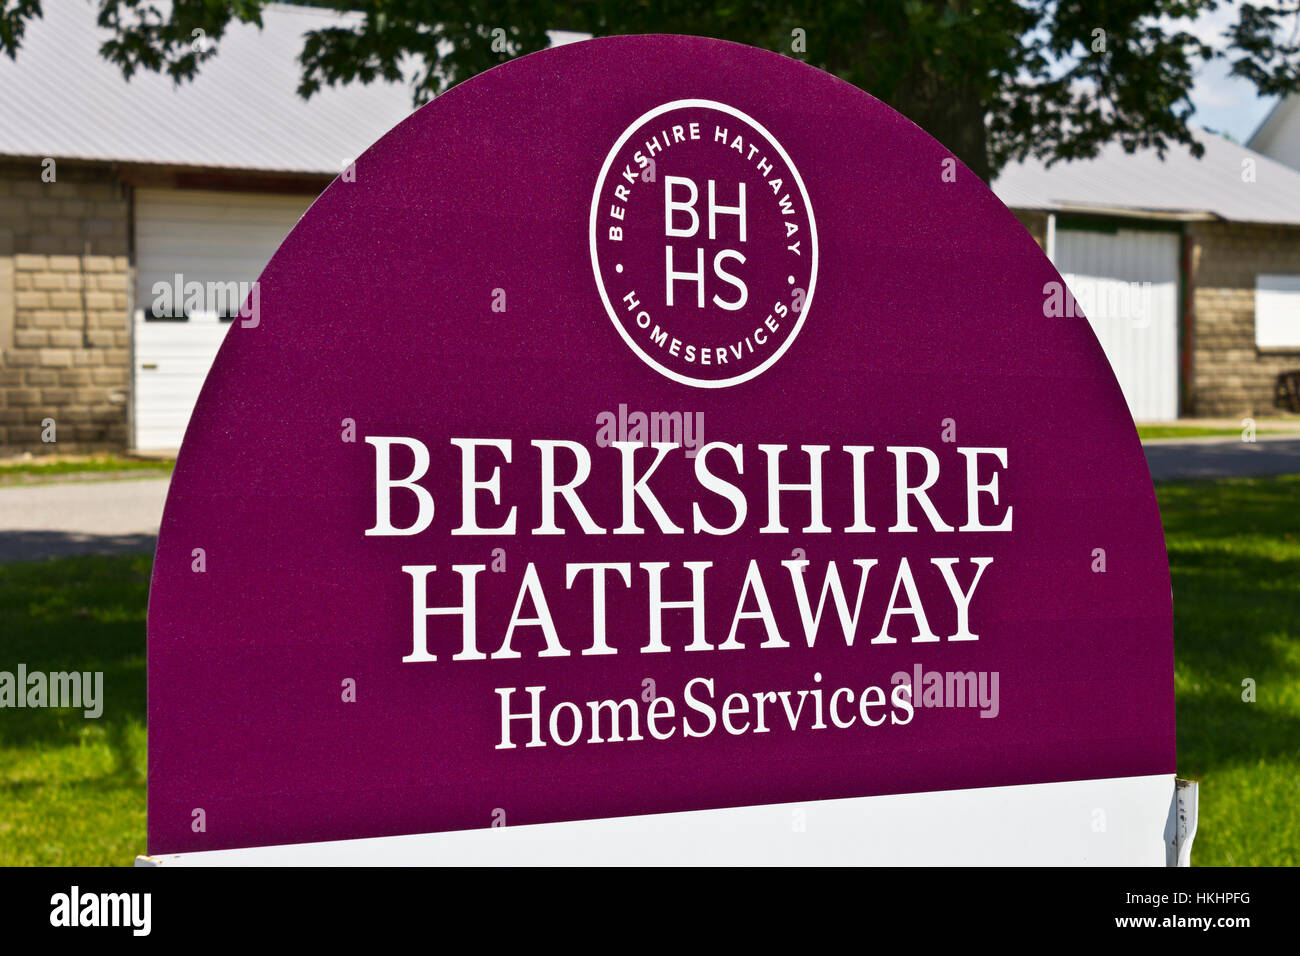 Lafayette, IN - Circa July 2016: Berkshire Hathaway HomeServices Sign. HomeServices is subsidiary of Berkshire Hathaway - Stock Image